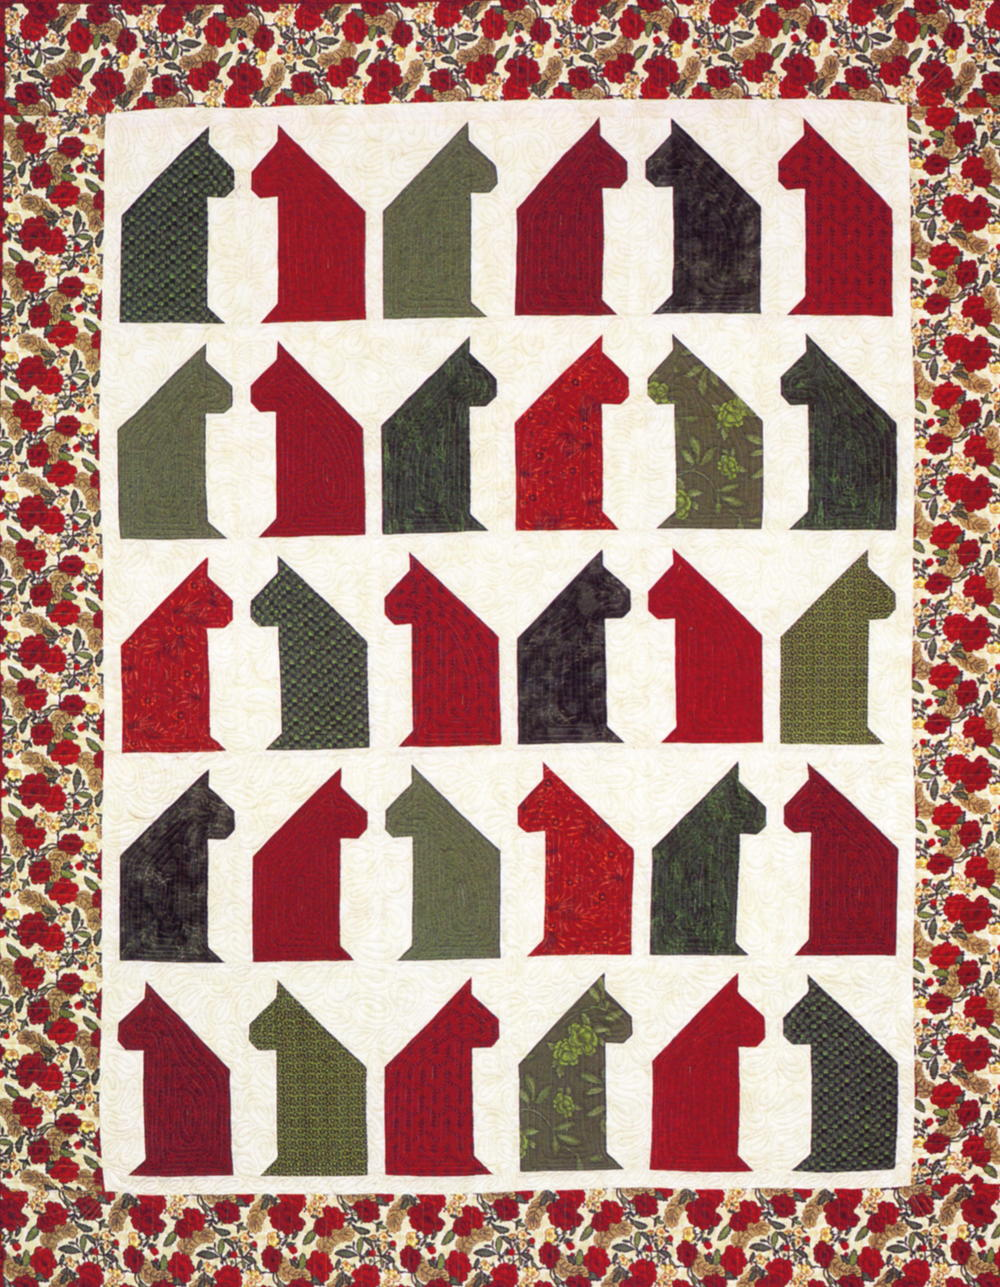 Patterns For Christmas Tree Skirts